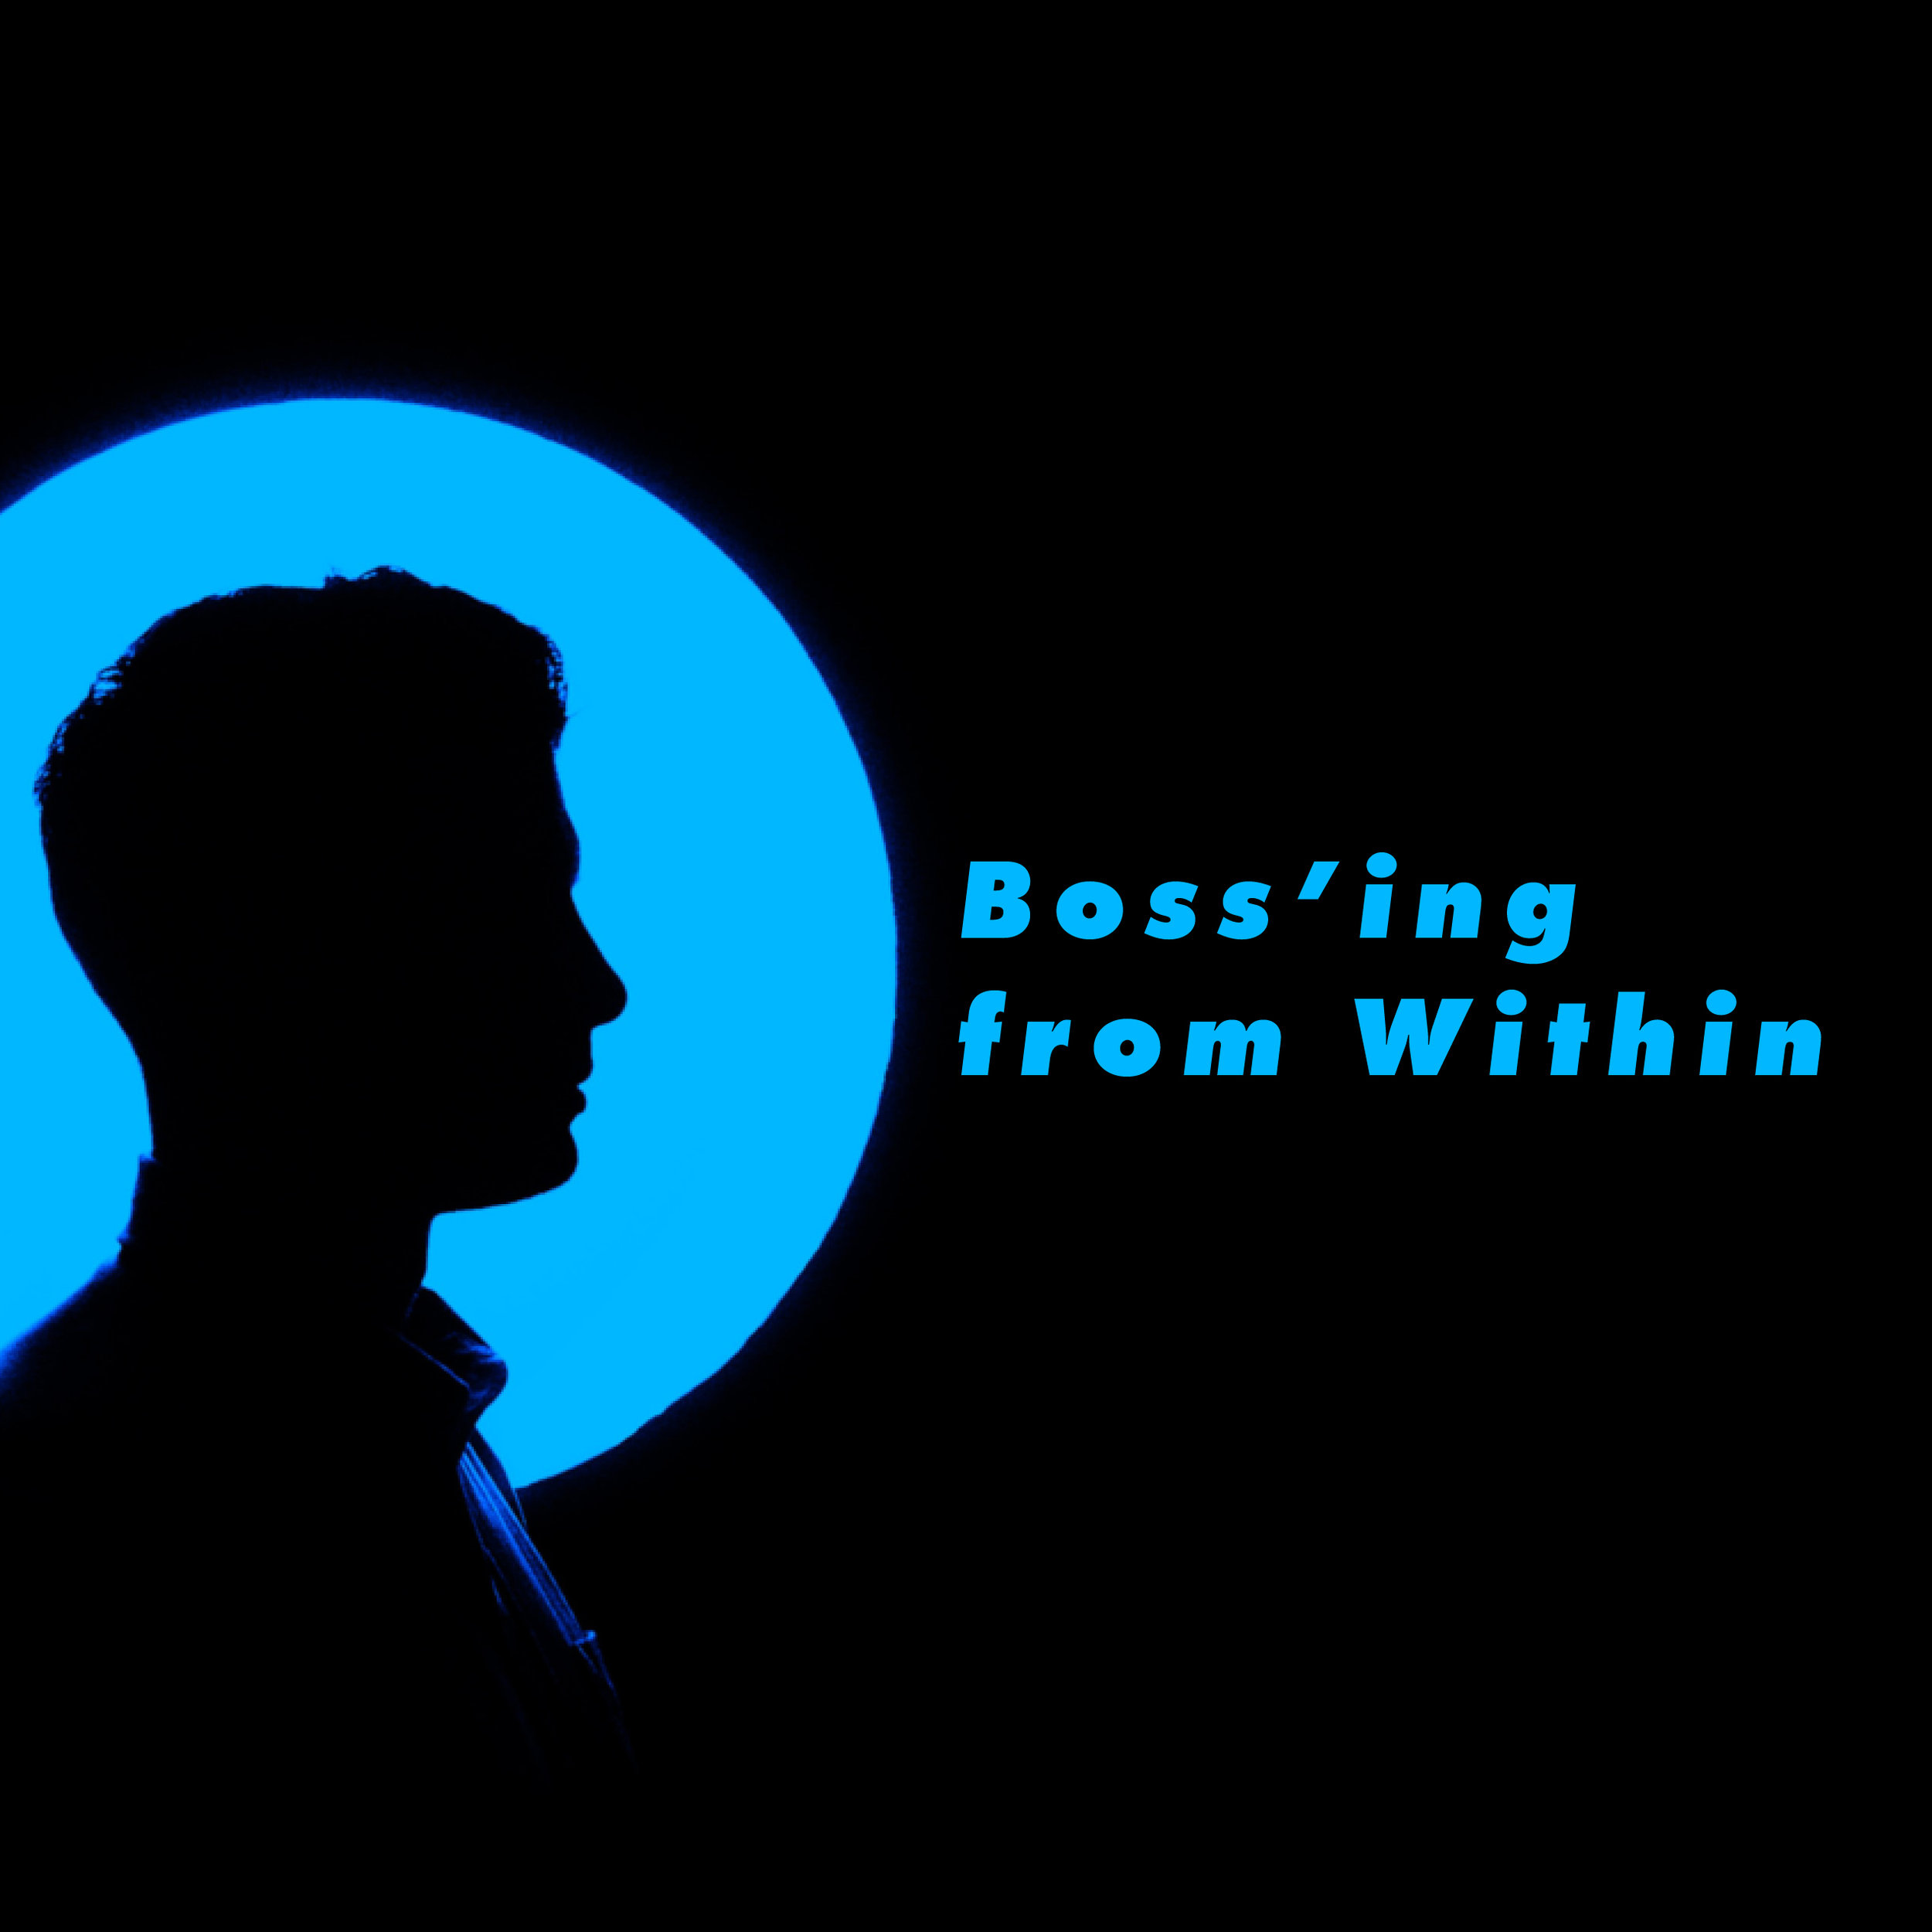 Boss'ing from Within